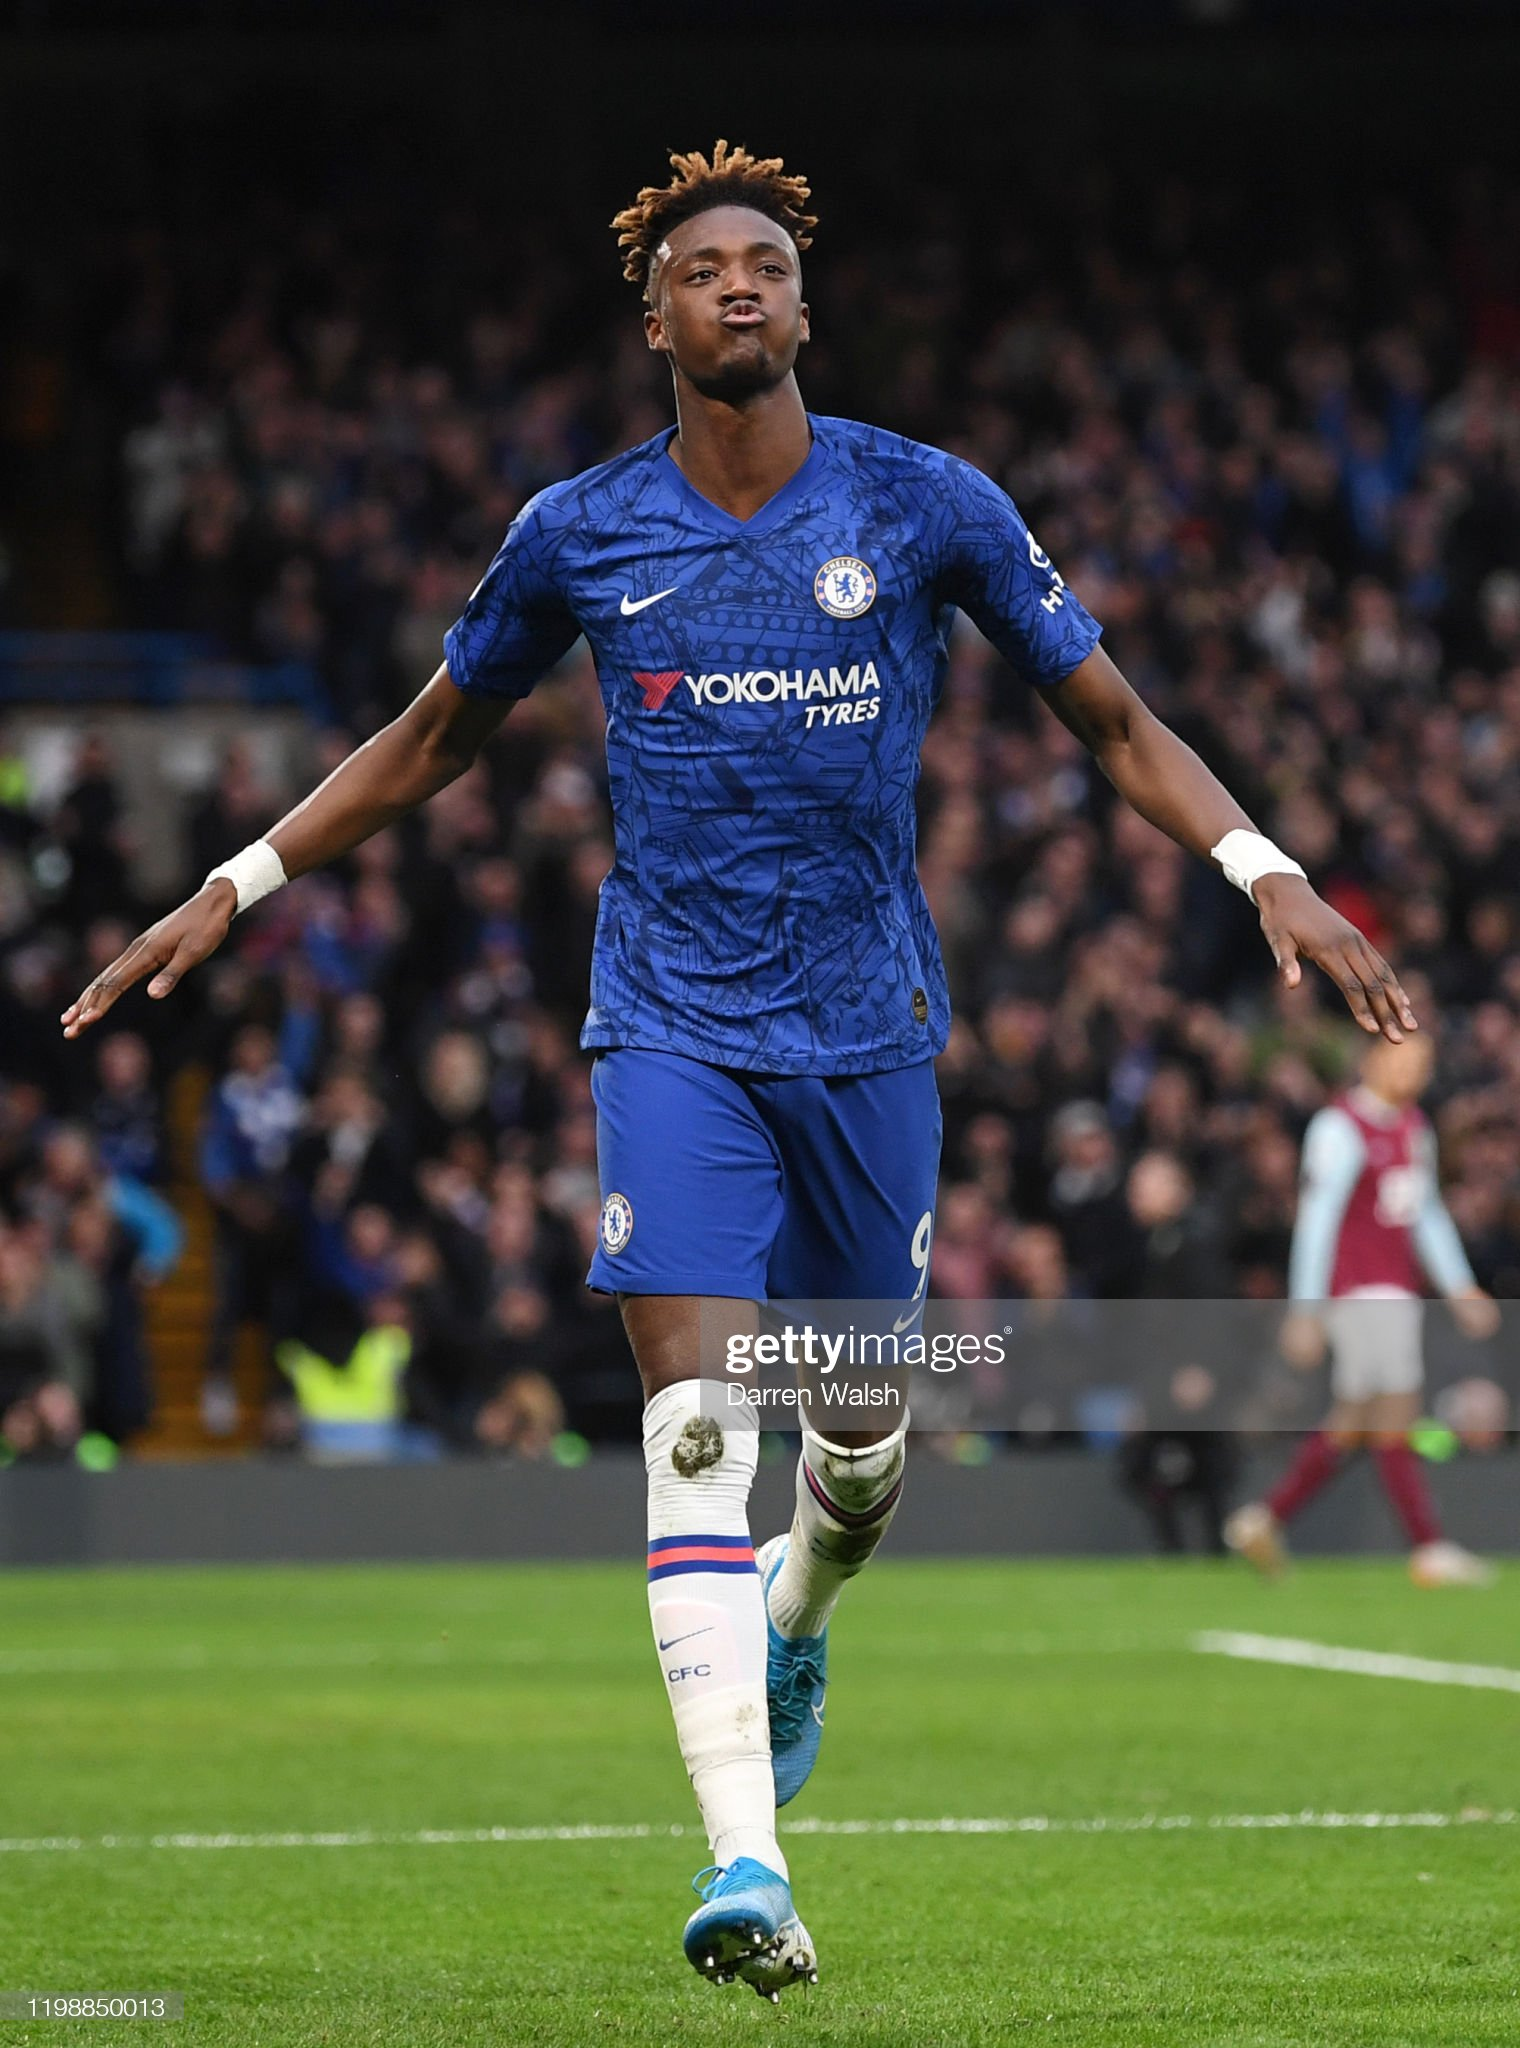 ¿Cuánto mide Tammy Abraham? - Altura - Real height Tammy-abraham-of-chelsea-celebrates-after-scoring-his-teams-second-picture-id1198850013?s=2048x2048